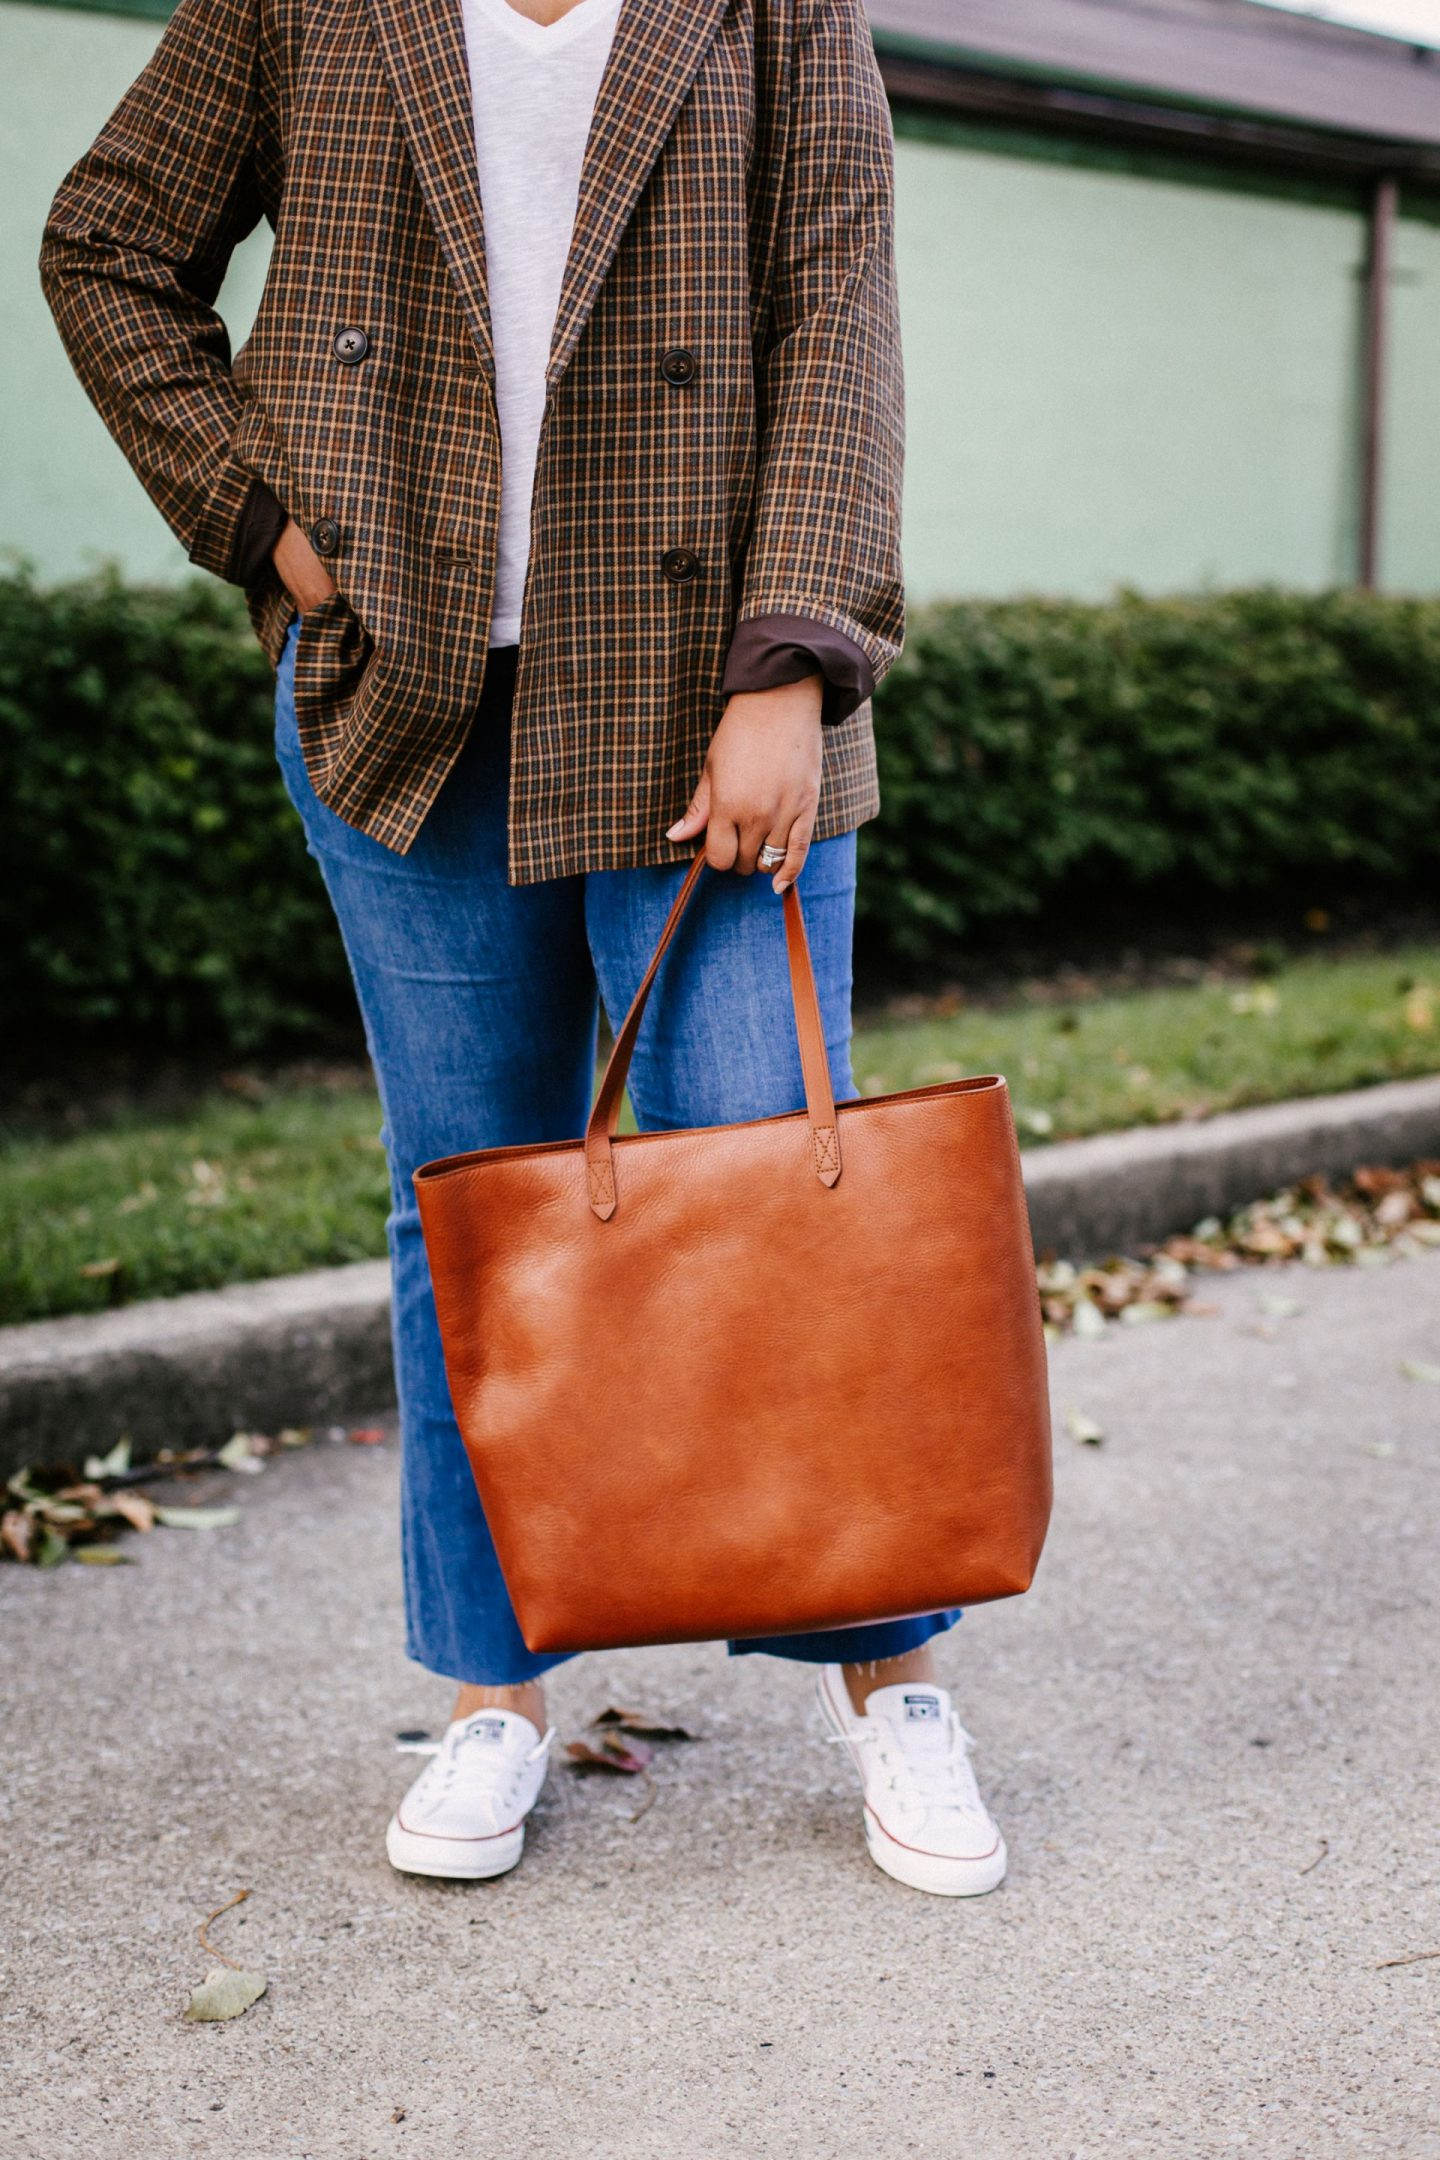 Madewell Blazer by popular Kentucky fashion blog, Really Rynetta: image of a woman wearing a Madewell Caldwell Double-Breasted Blazer in Mandell Plaid, Madewell Whisper Cotton V-Neck Pocket Tee, Madewell Cali High Waist Demi Boot Jeans, Nordstrom Chuck Taylor® Shoreline Sneaker CONVERSE, and holding a Madewell The Transport Tote.